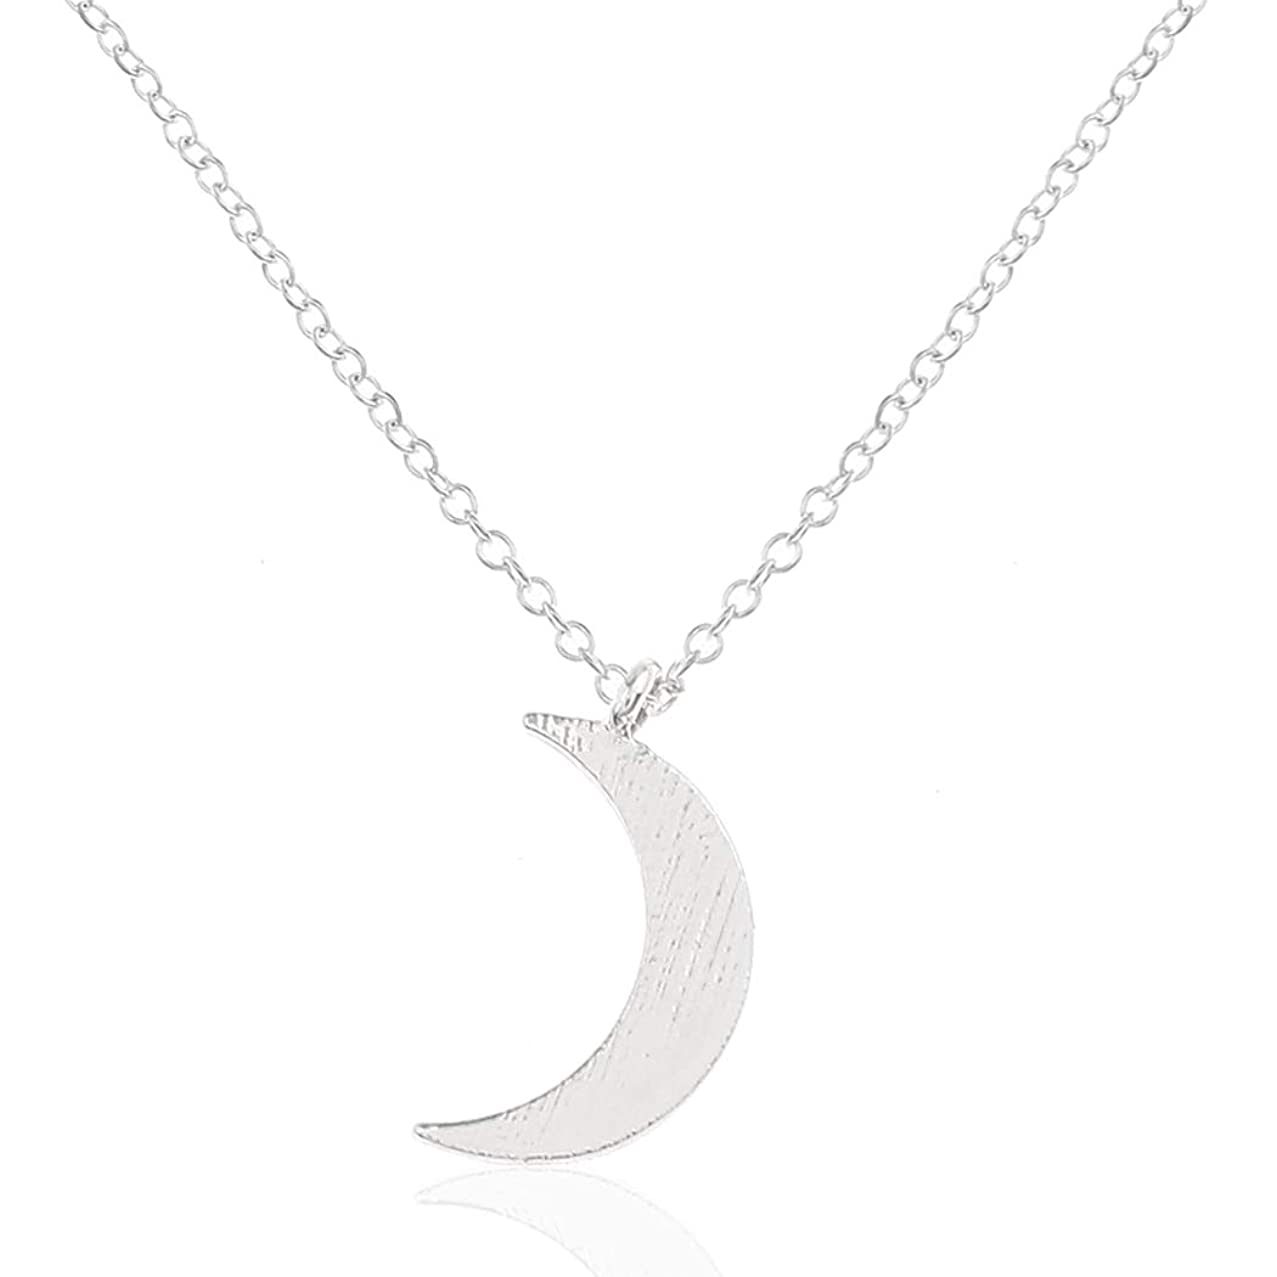 Barogirl Crescent Moon Pendant Necklace Dainty Necklaces Jewelry with Tiny Moon for Women and Girls (Silver)